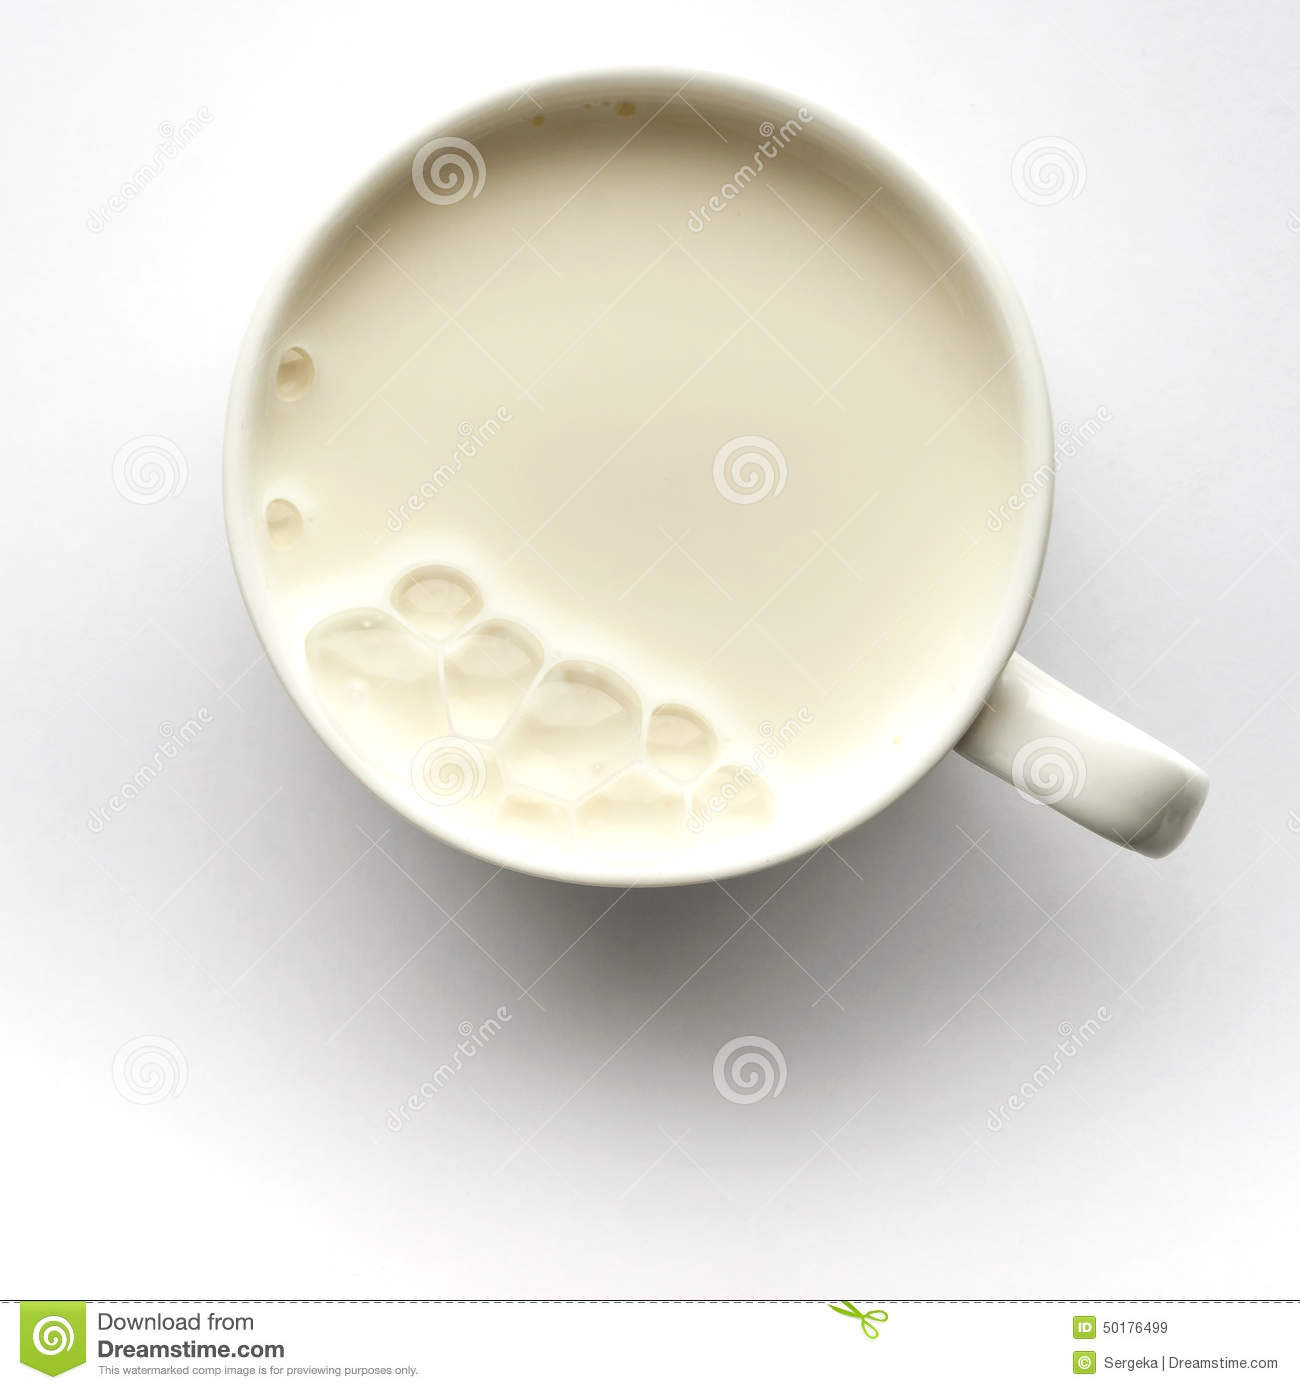 Fresh milk in the cup